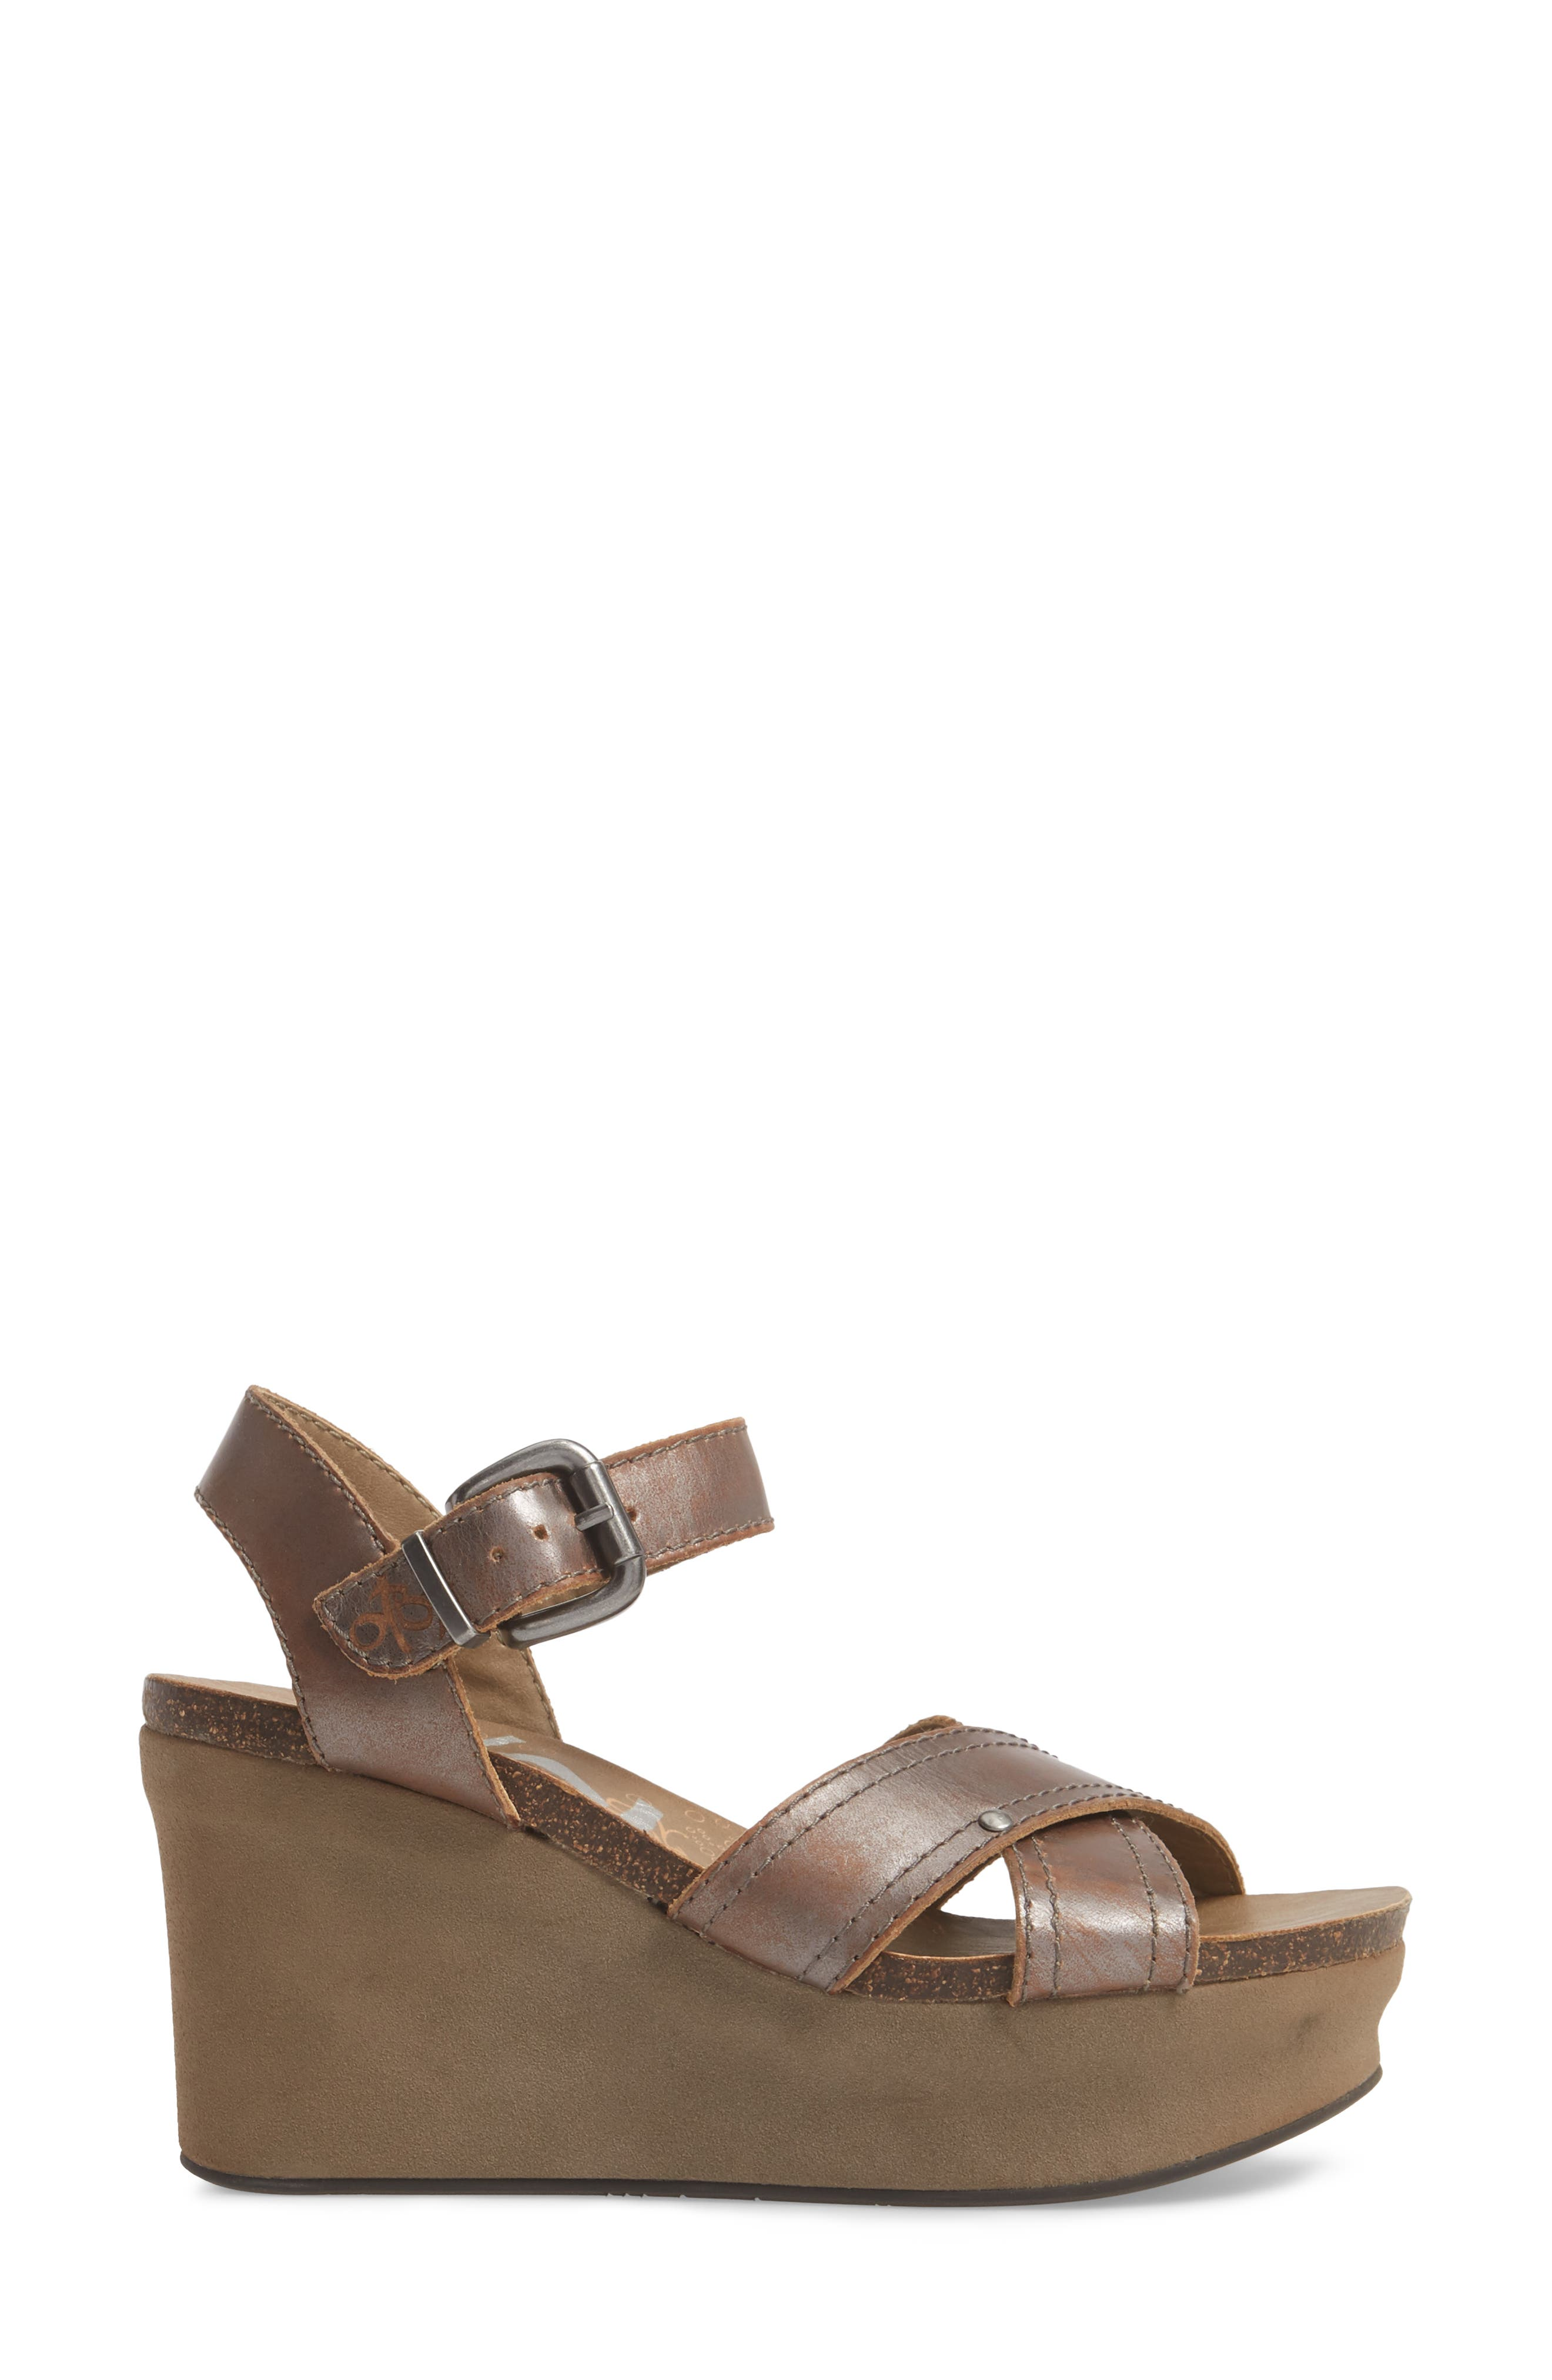 Bee Cave Wedge Sandal,                             Alternate thumbnail 3, color,                             Pewter Leather